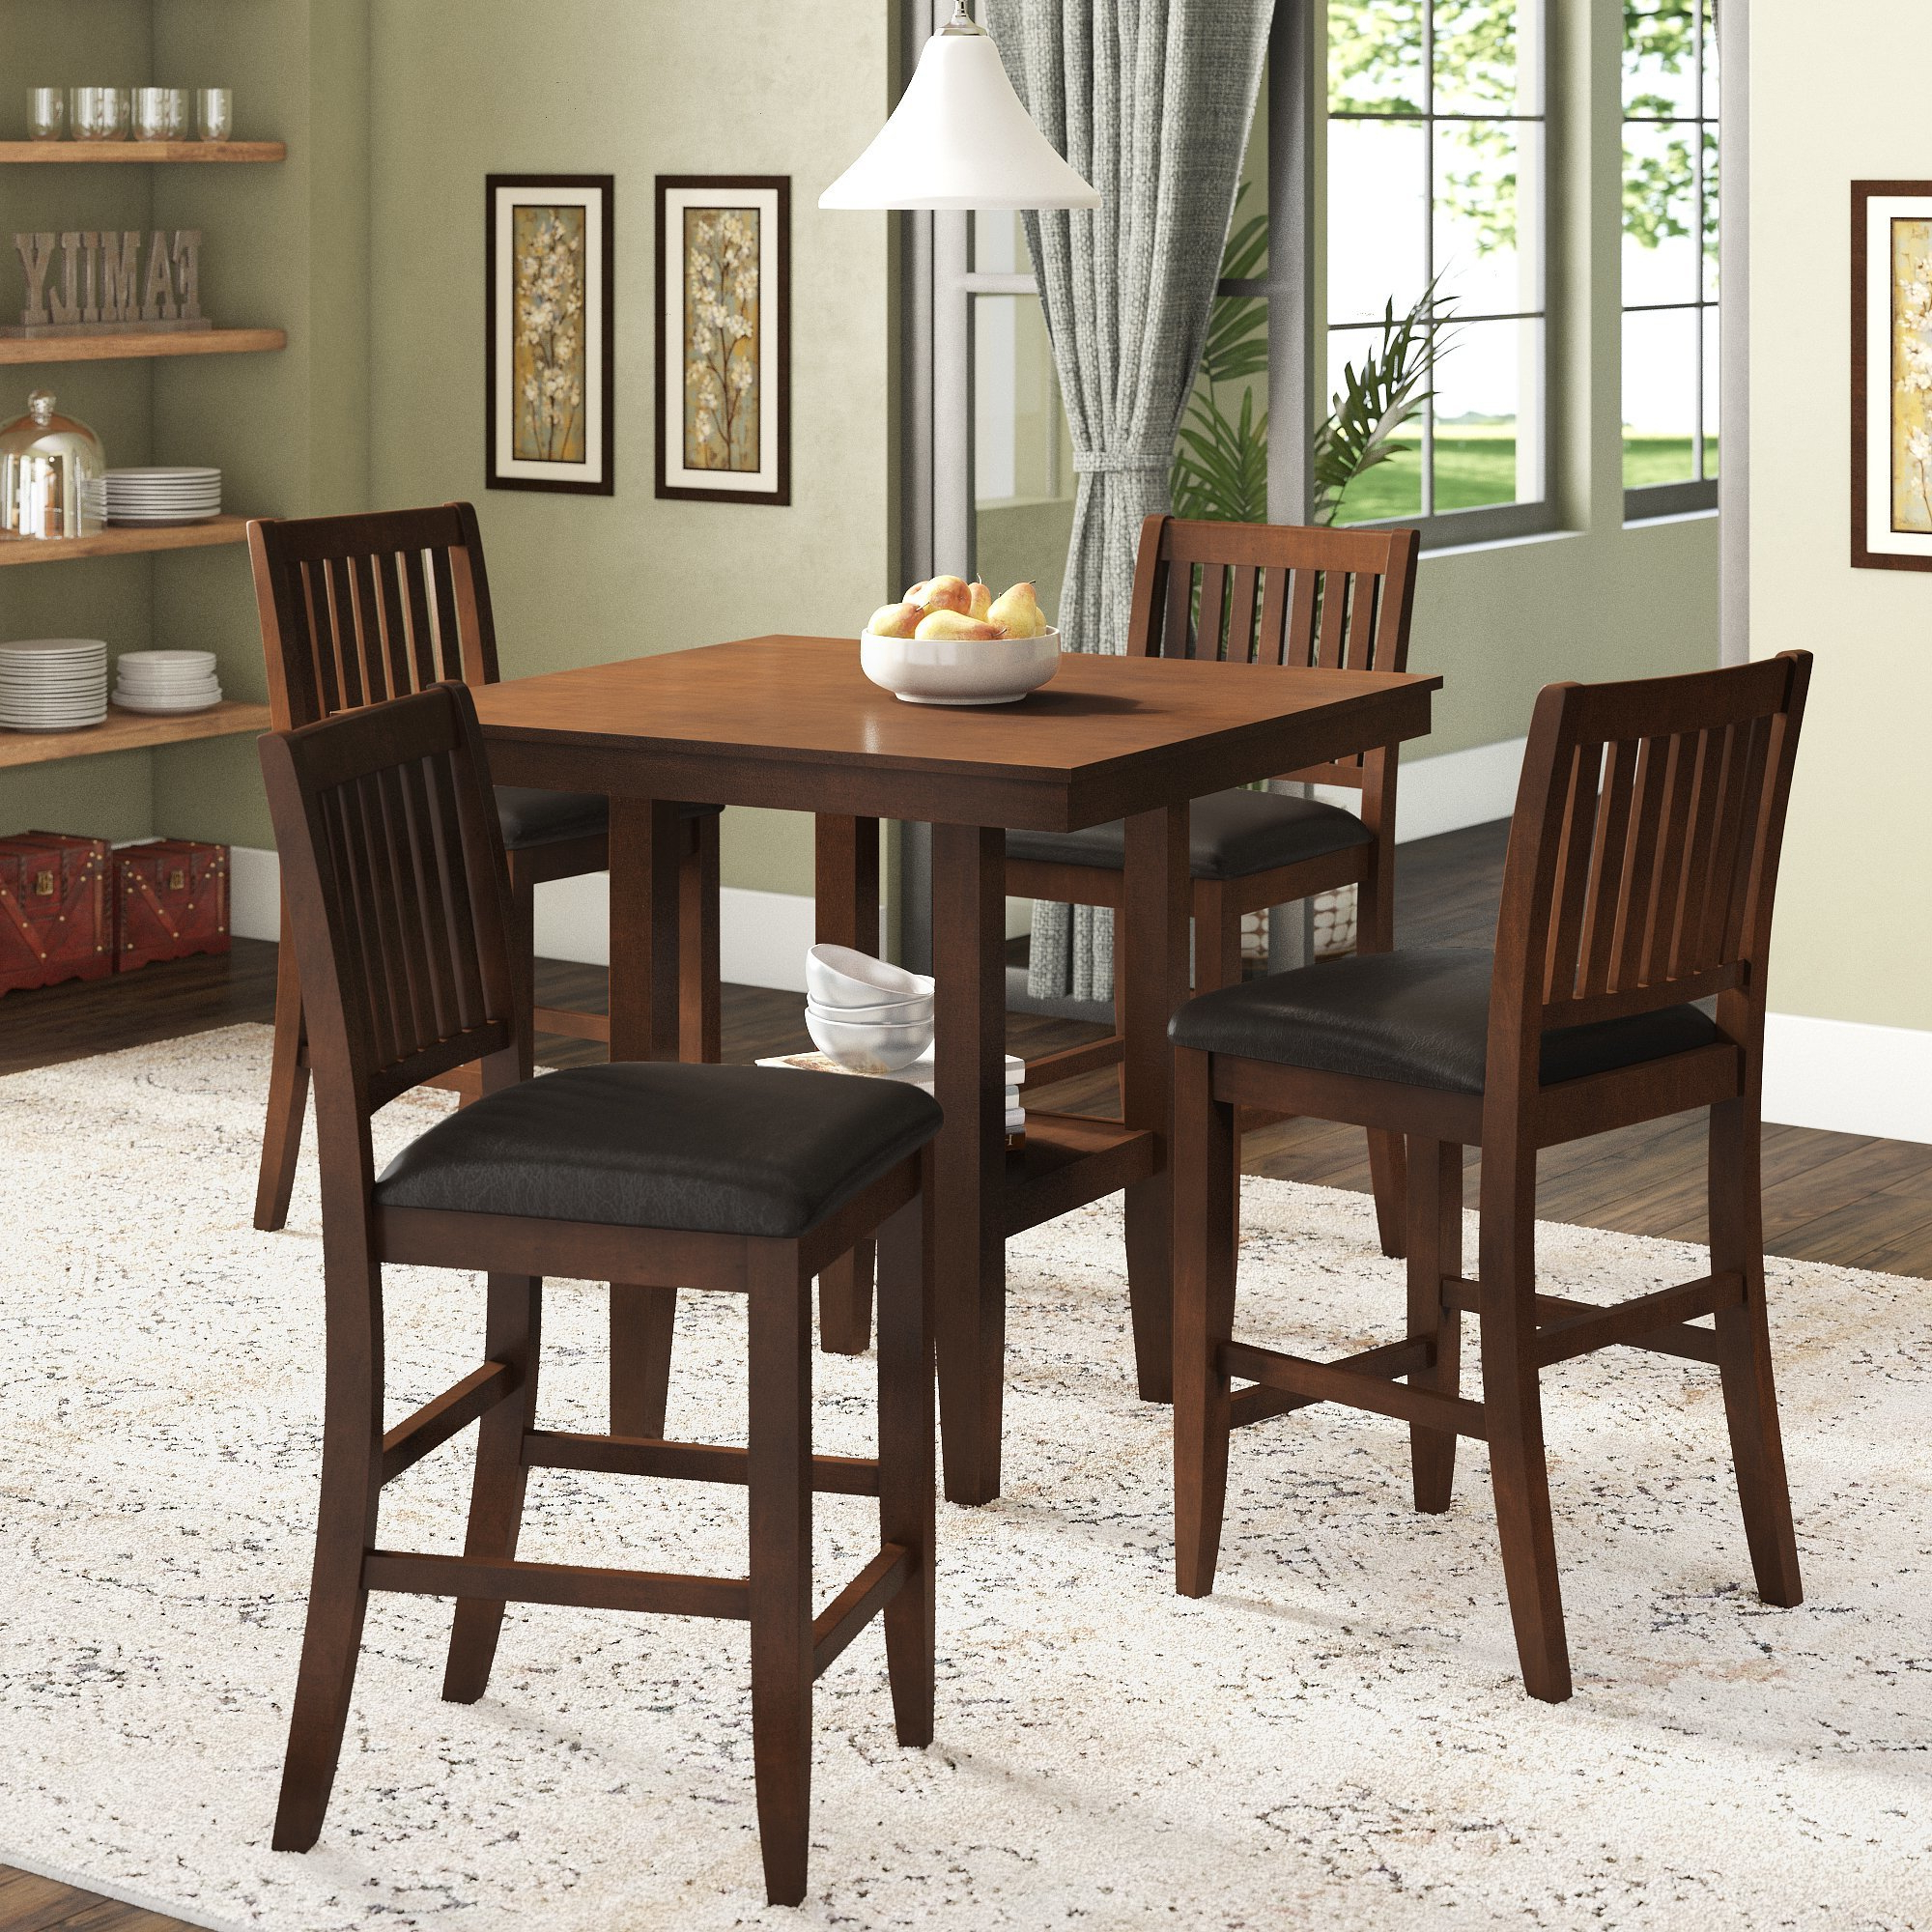 Ebay Pertaining To Preferred Kerley 4 Piece Dining Sets (View 20 of 25)